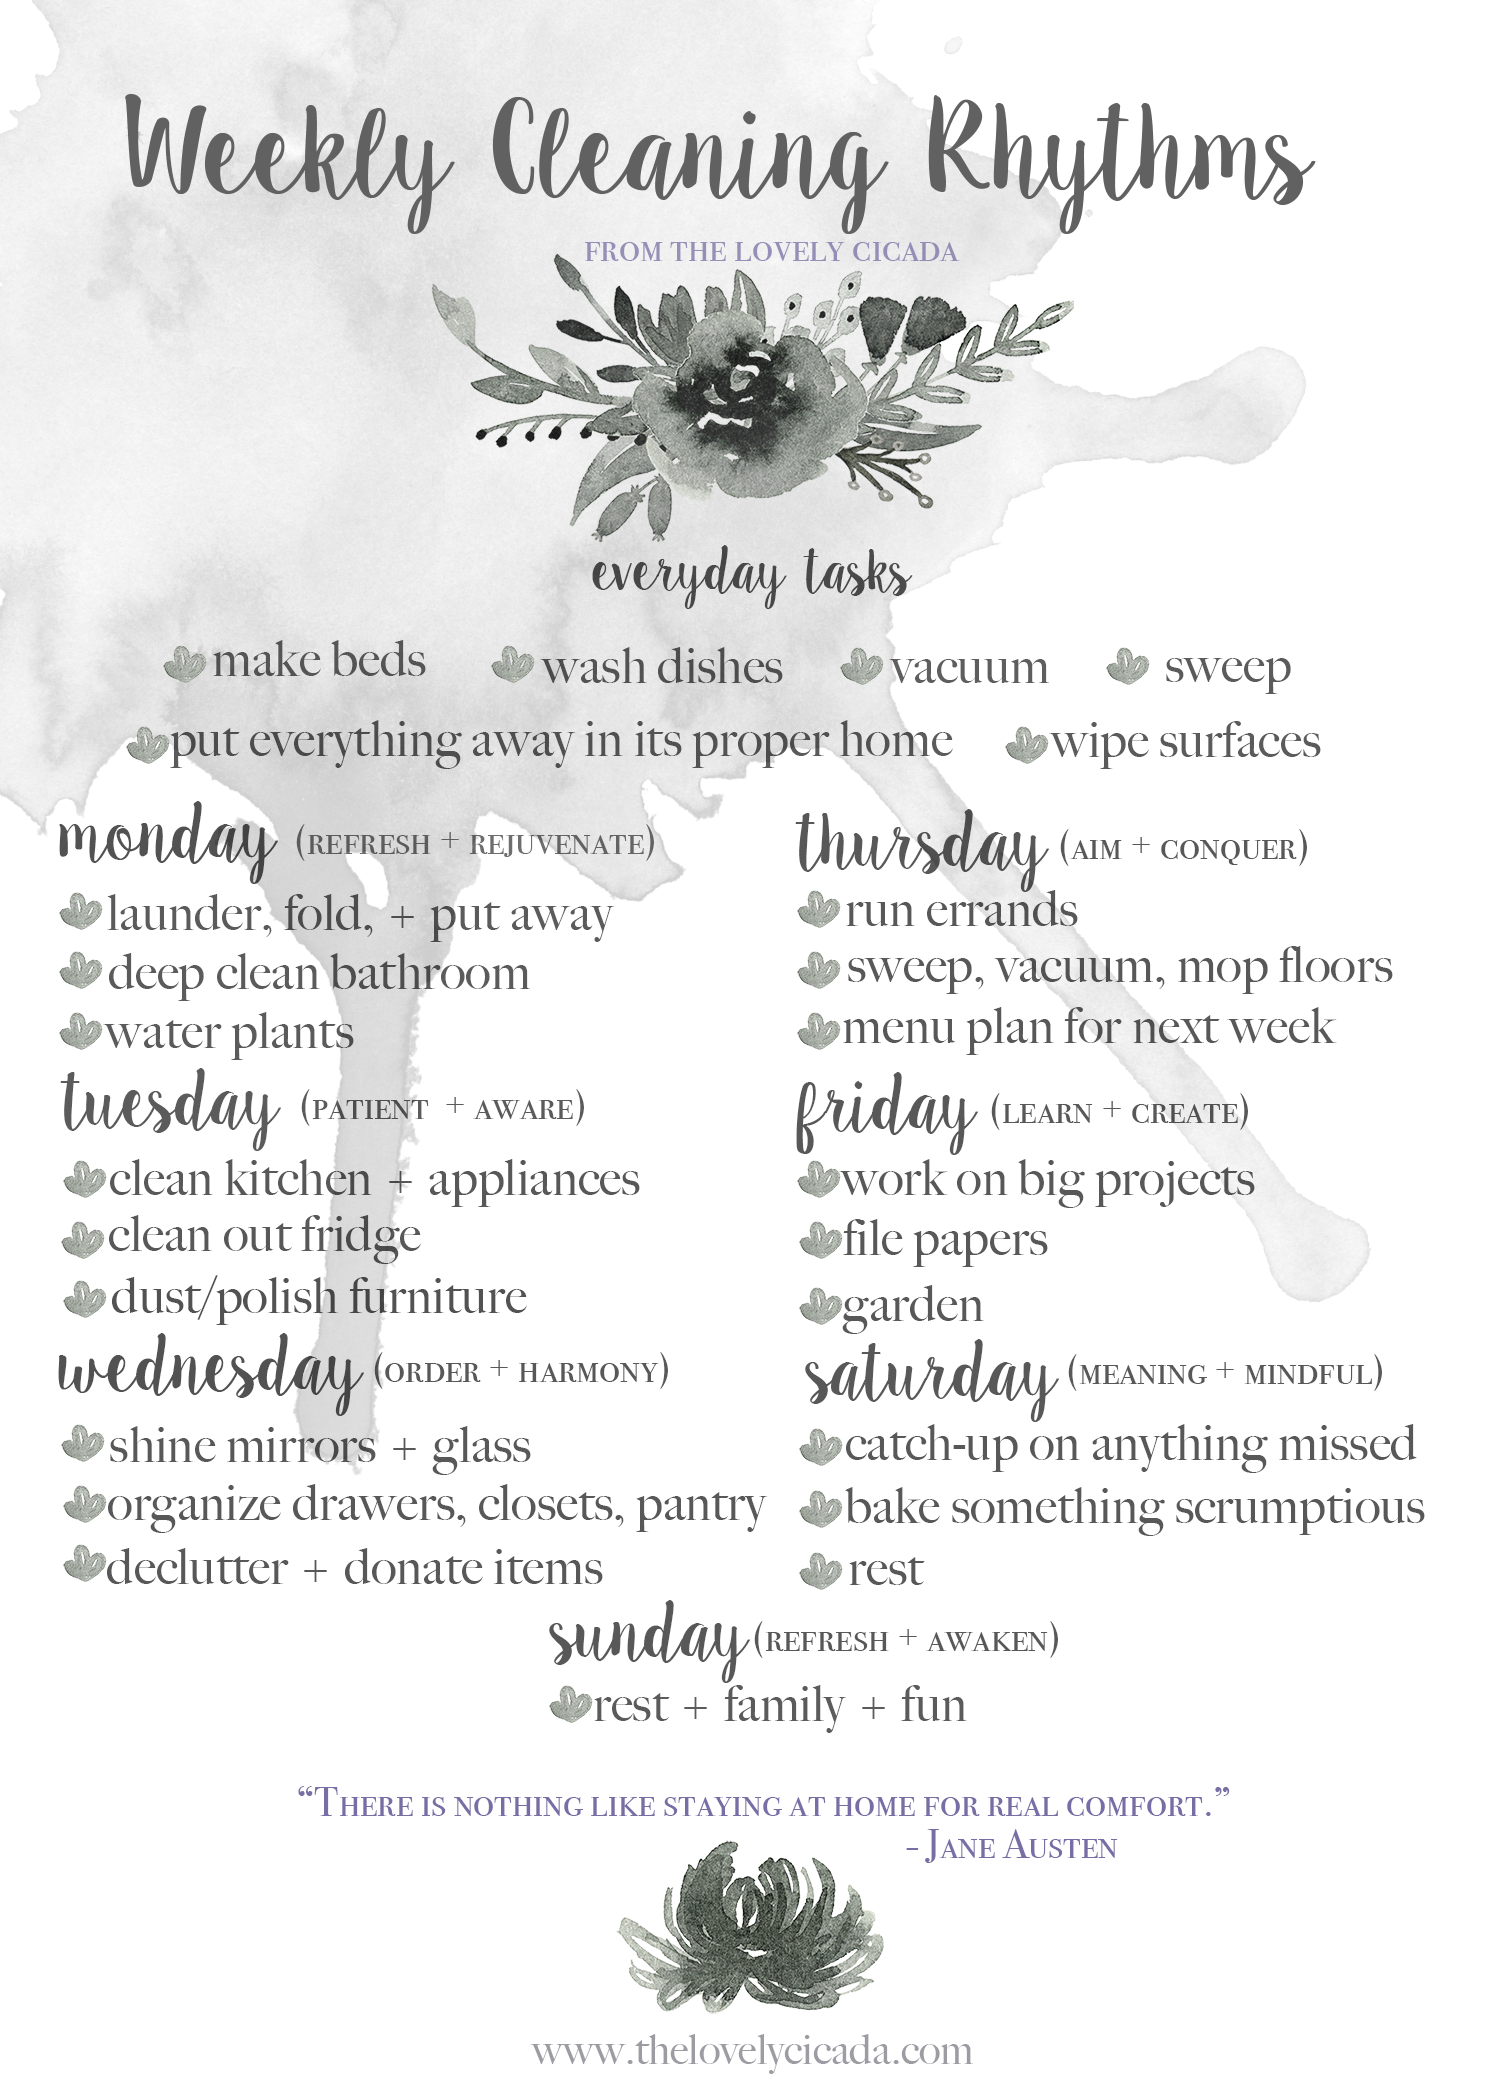 Weekly Cleaning Rhythms from thelovelycicada.com